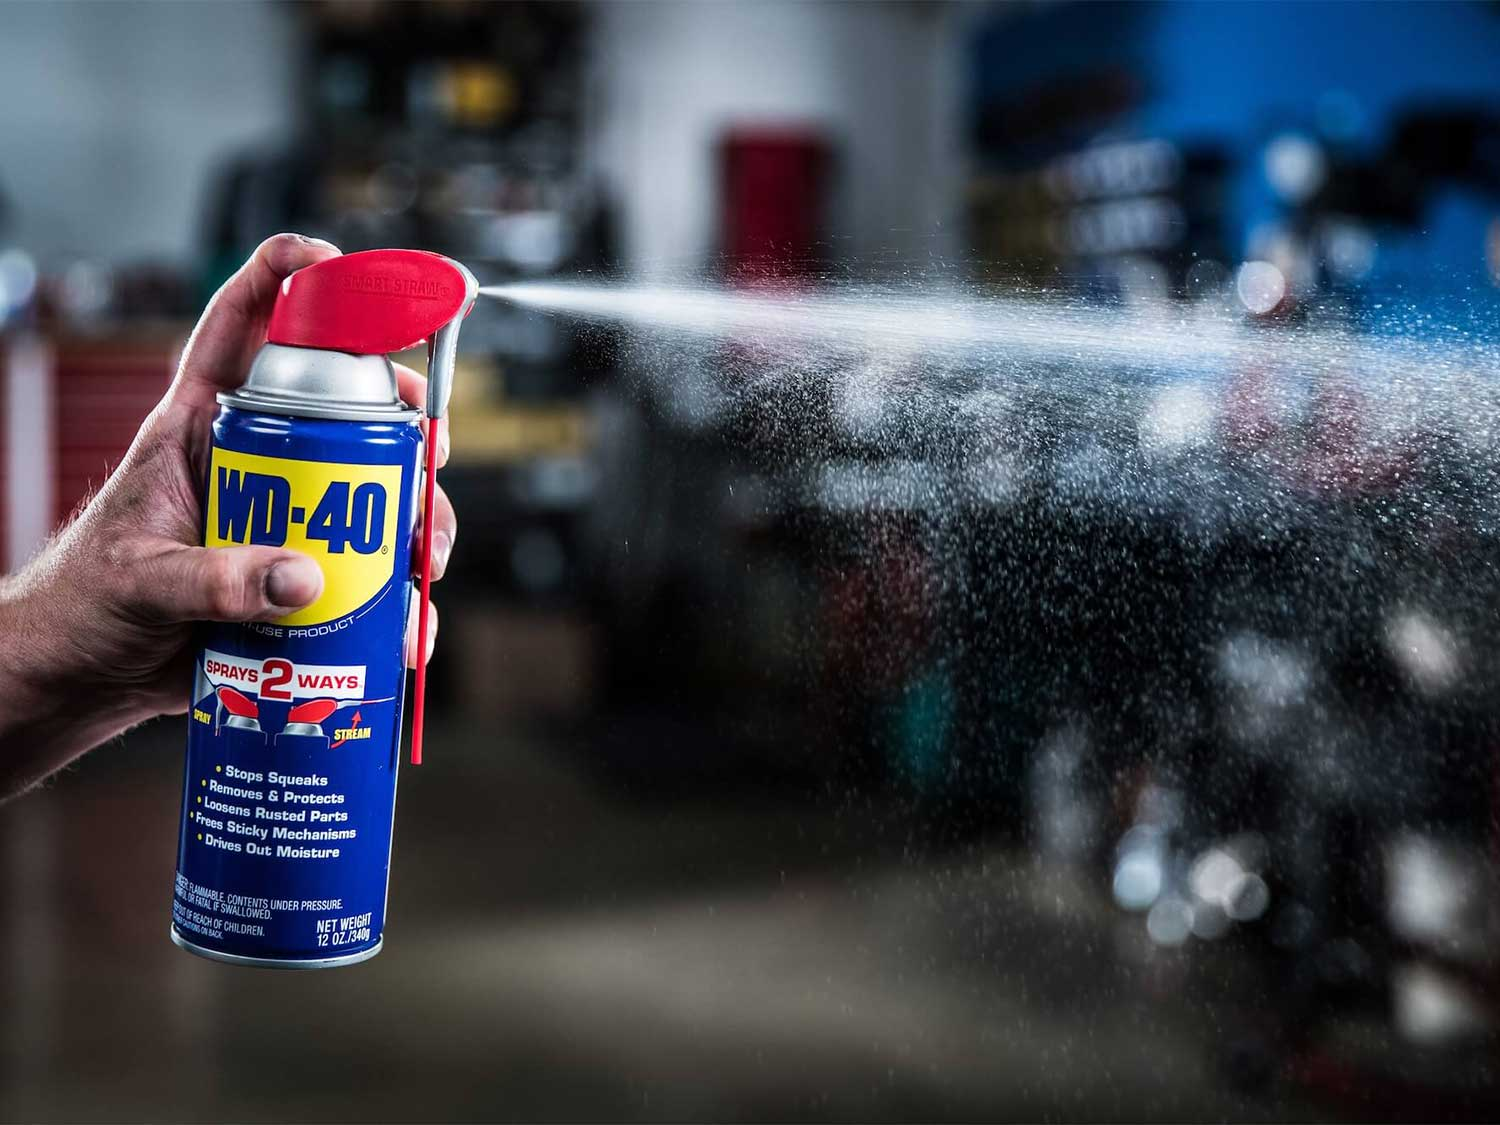 A person spraying a can of WD40 in a garage.